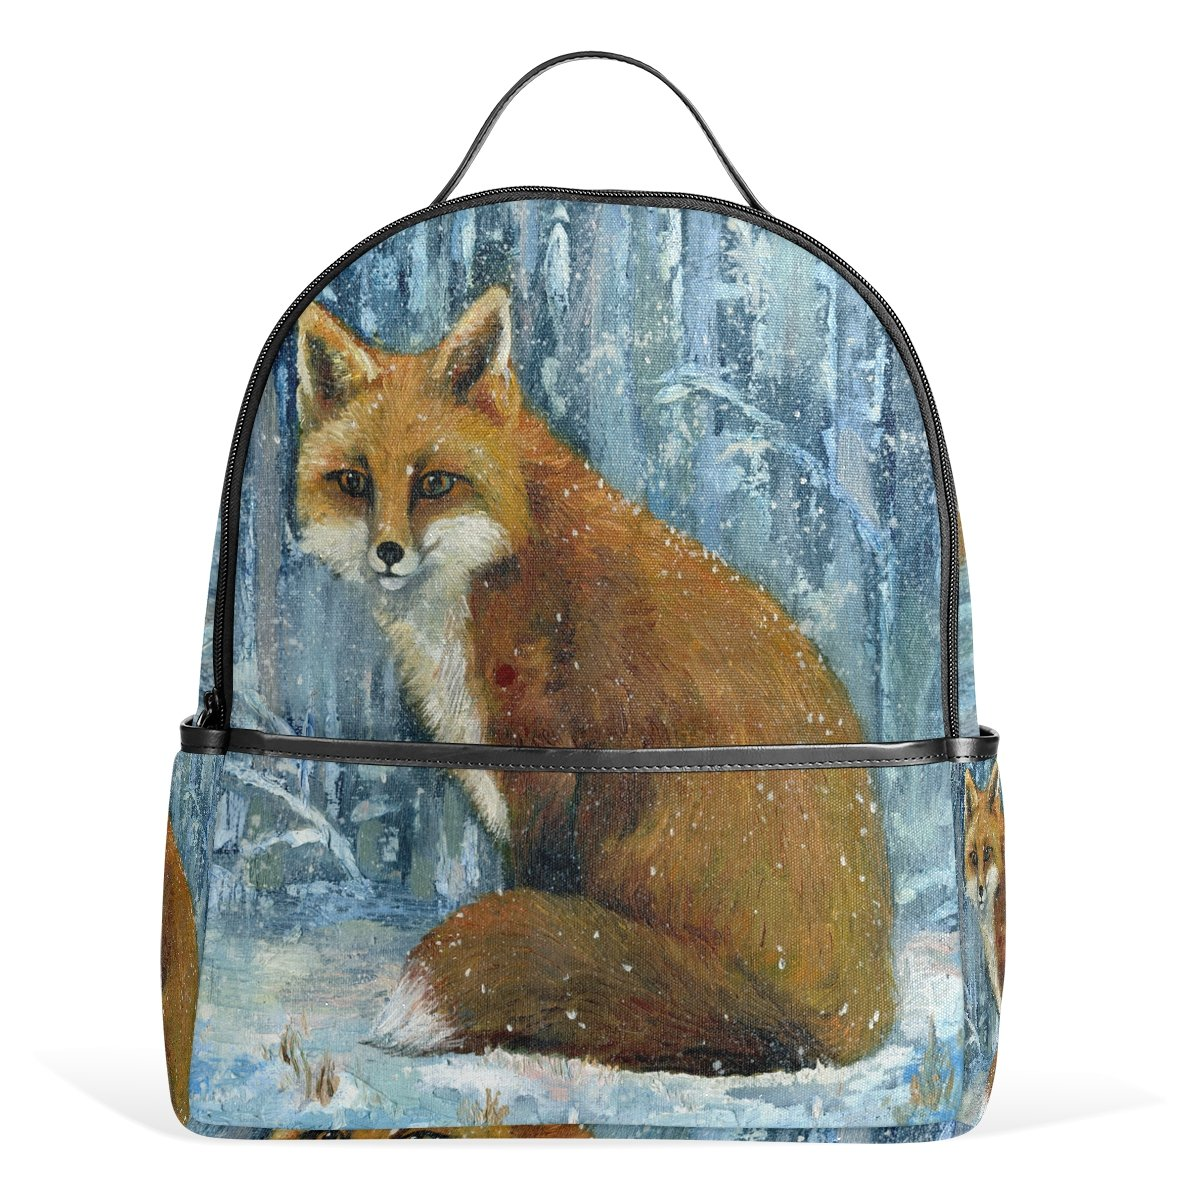 Use4 Winter Snow Fox Polyester Backpack School Travel Bag